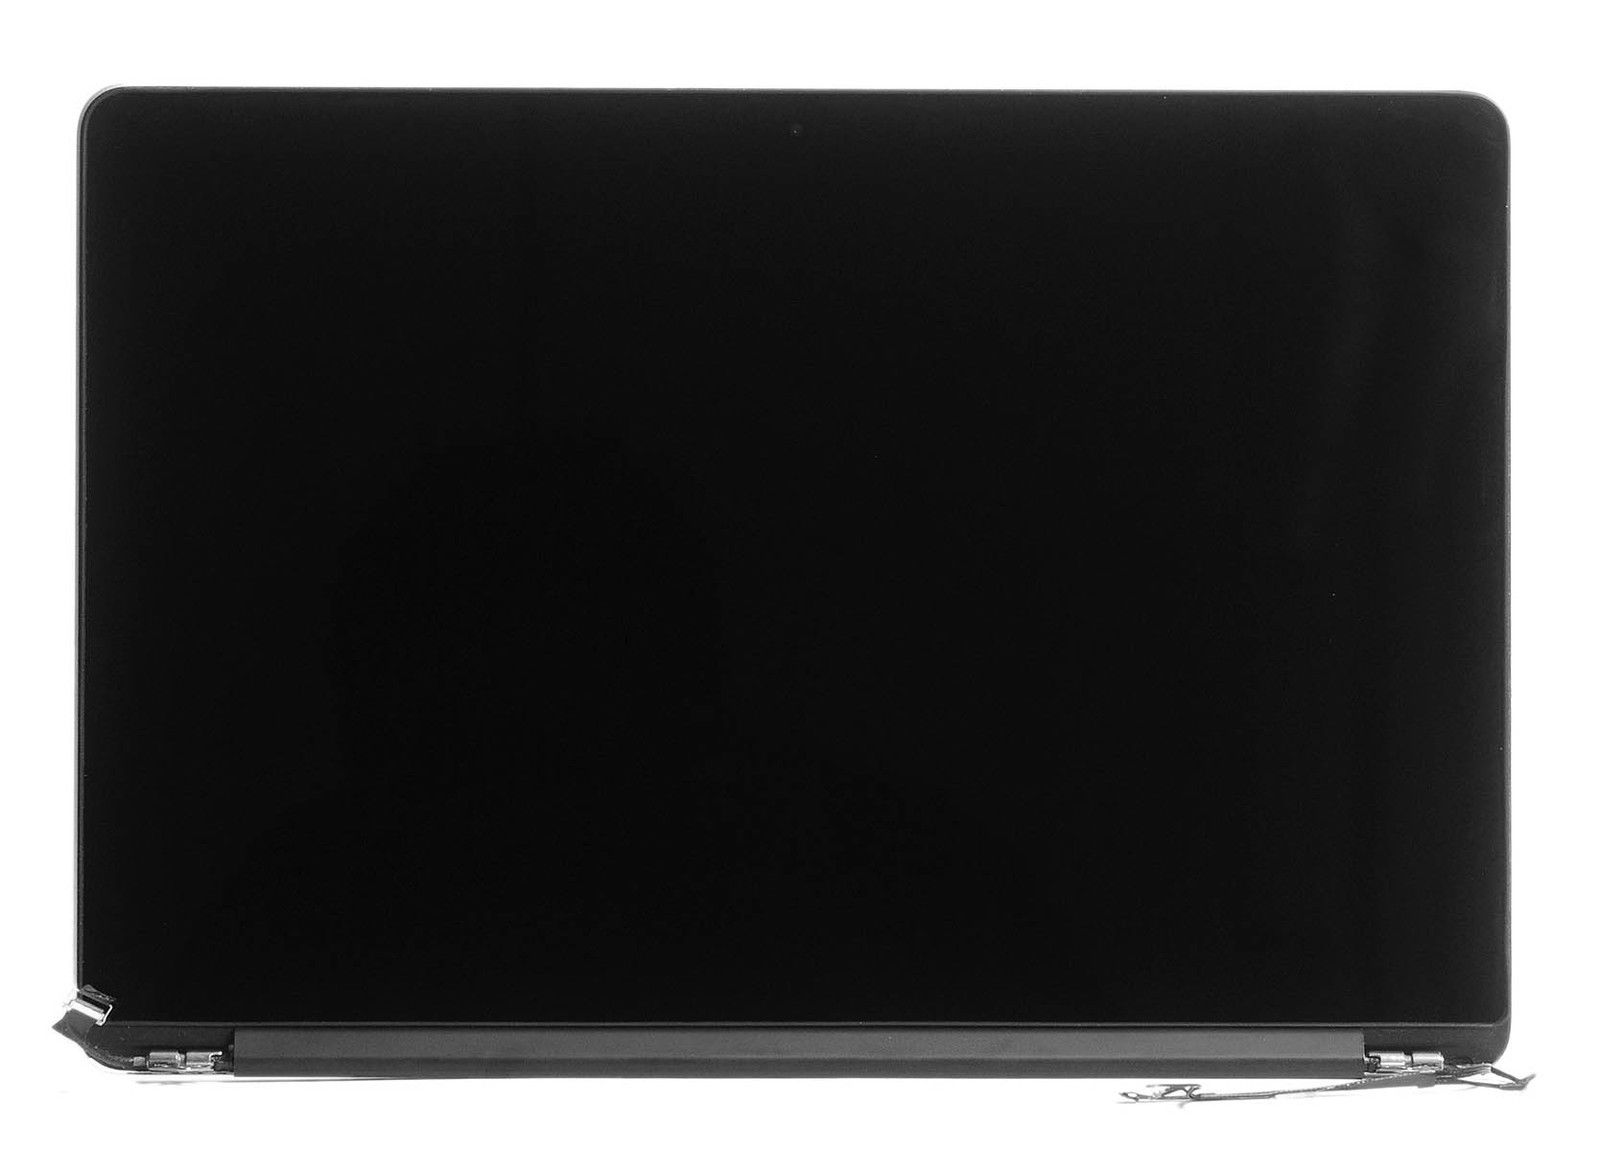 LCD LED Display Screen Full Assembly for MacBook Pro Retina Display A1398 2012